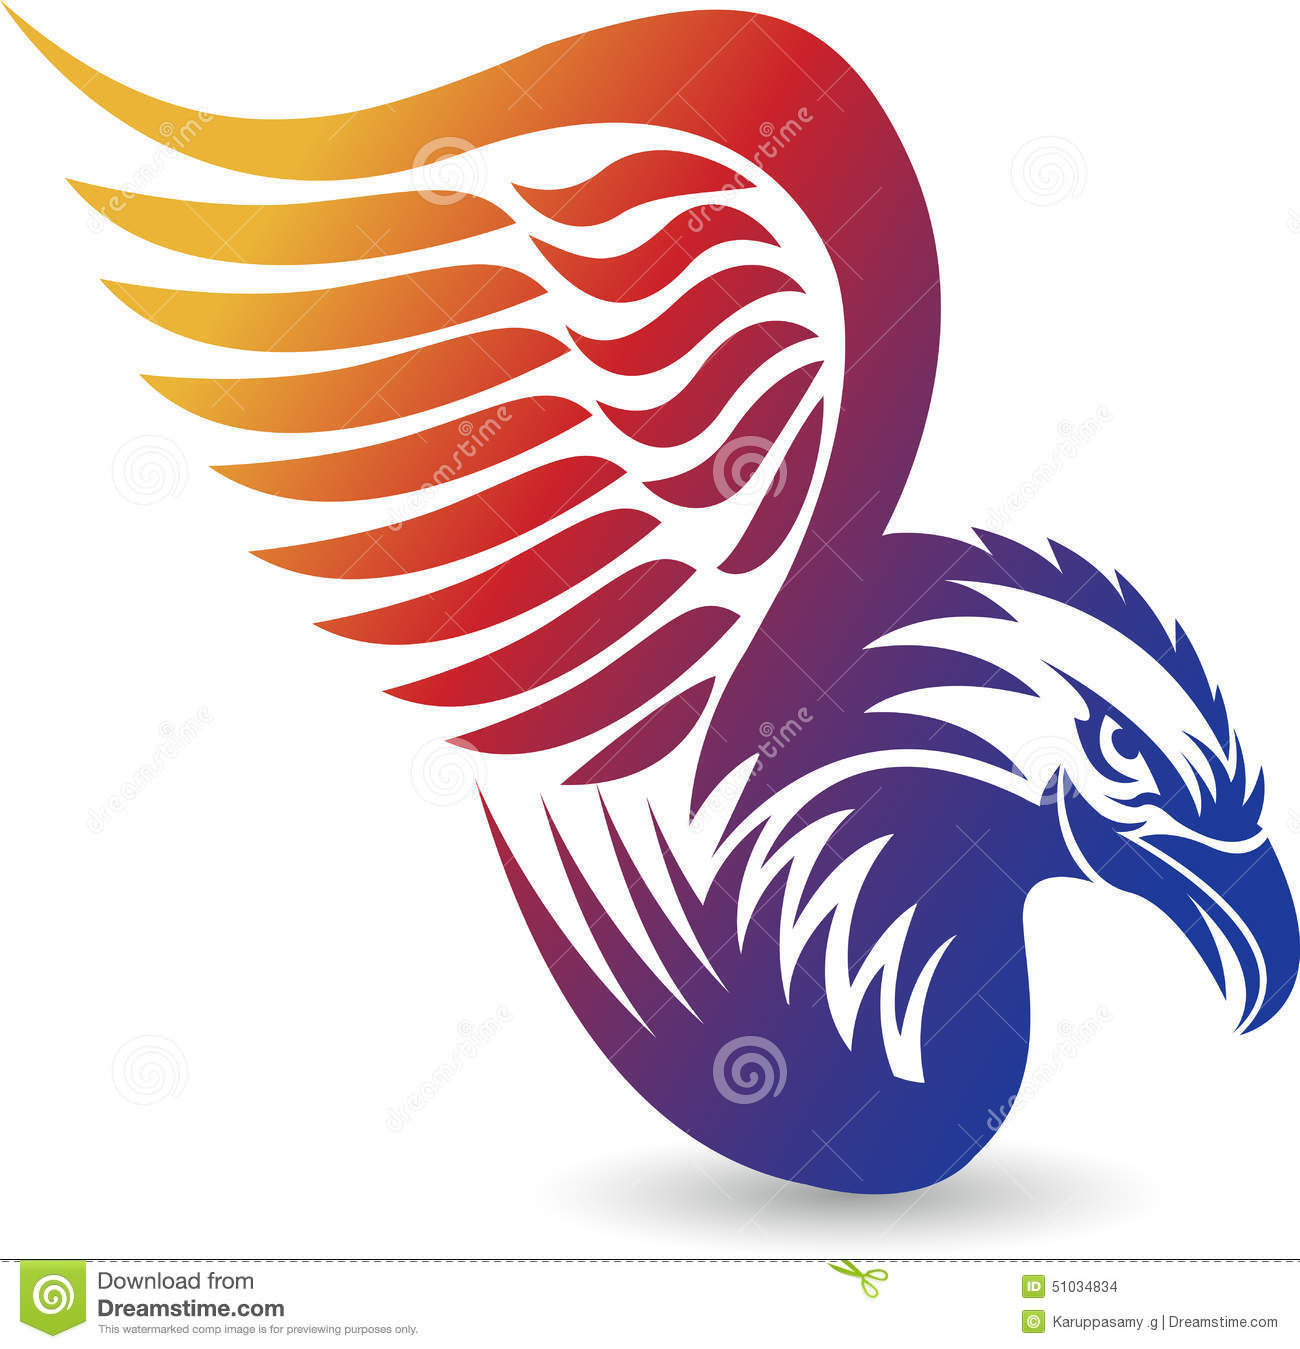 Illustration art of a Eagle logo with background.